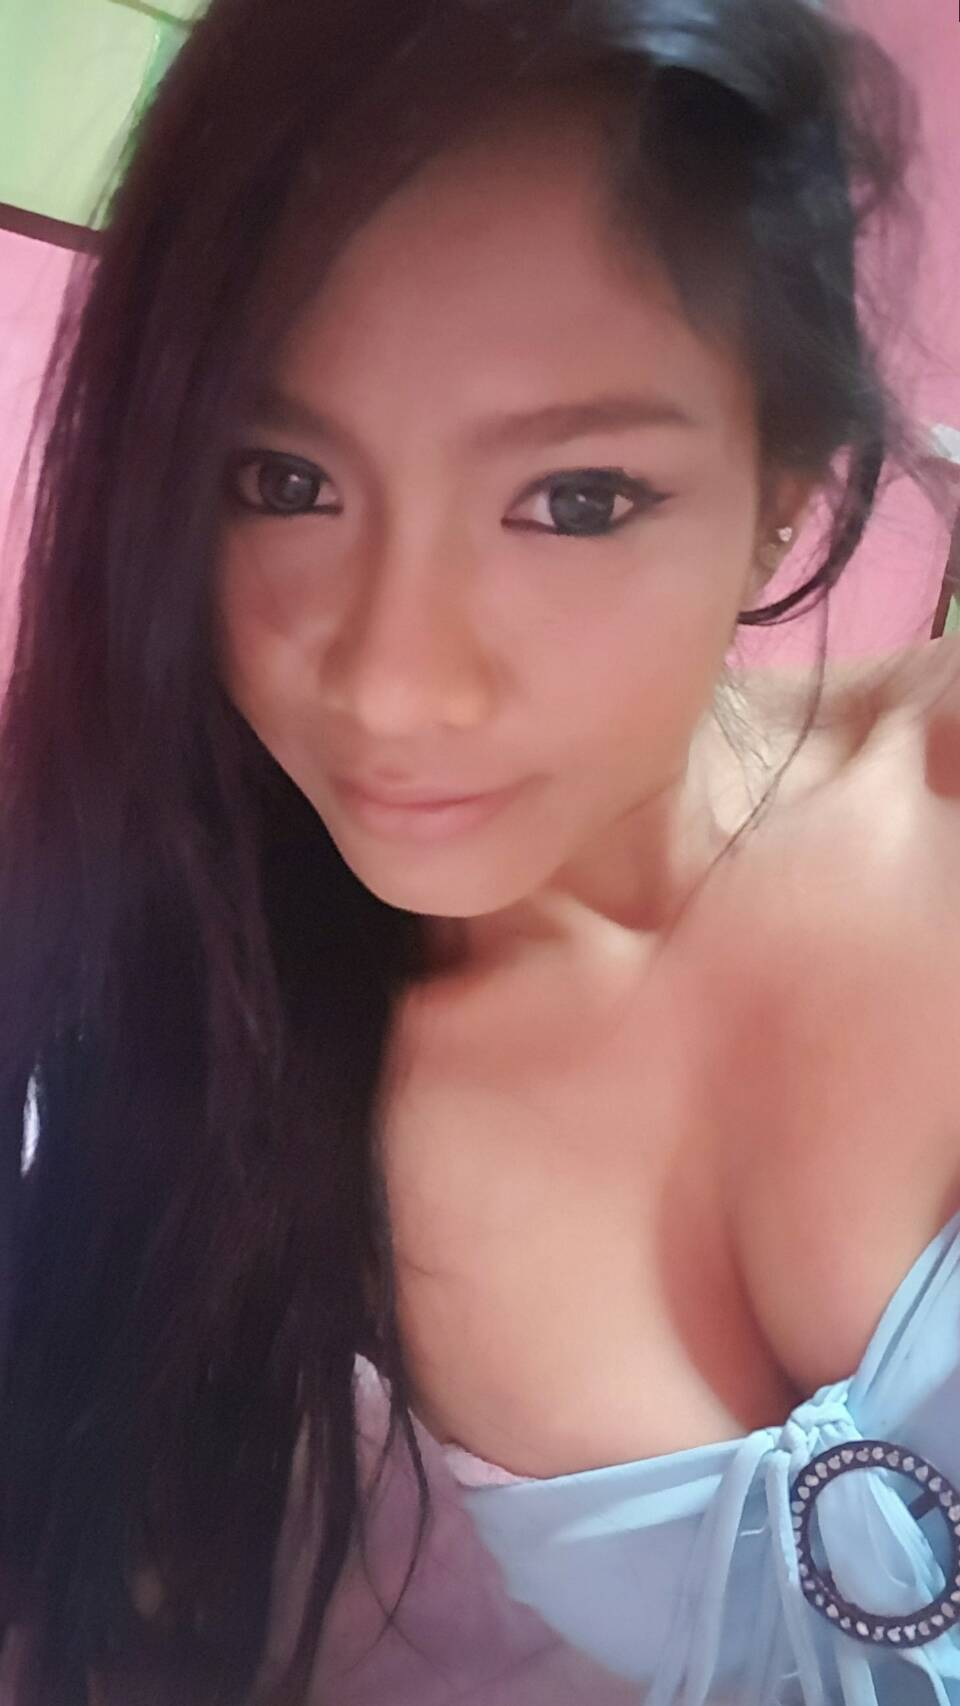 dating sider norge escorte pattaya